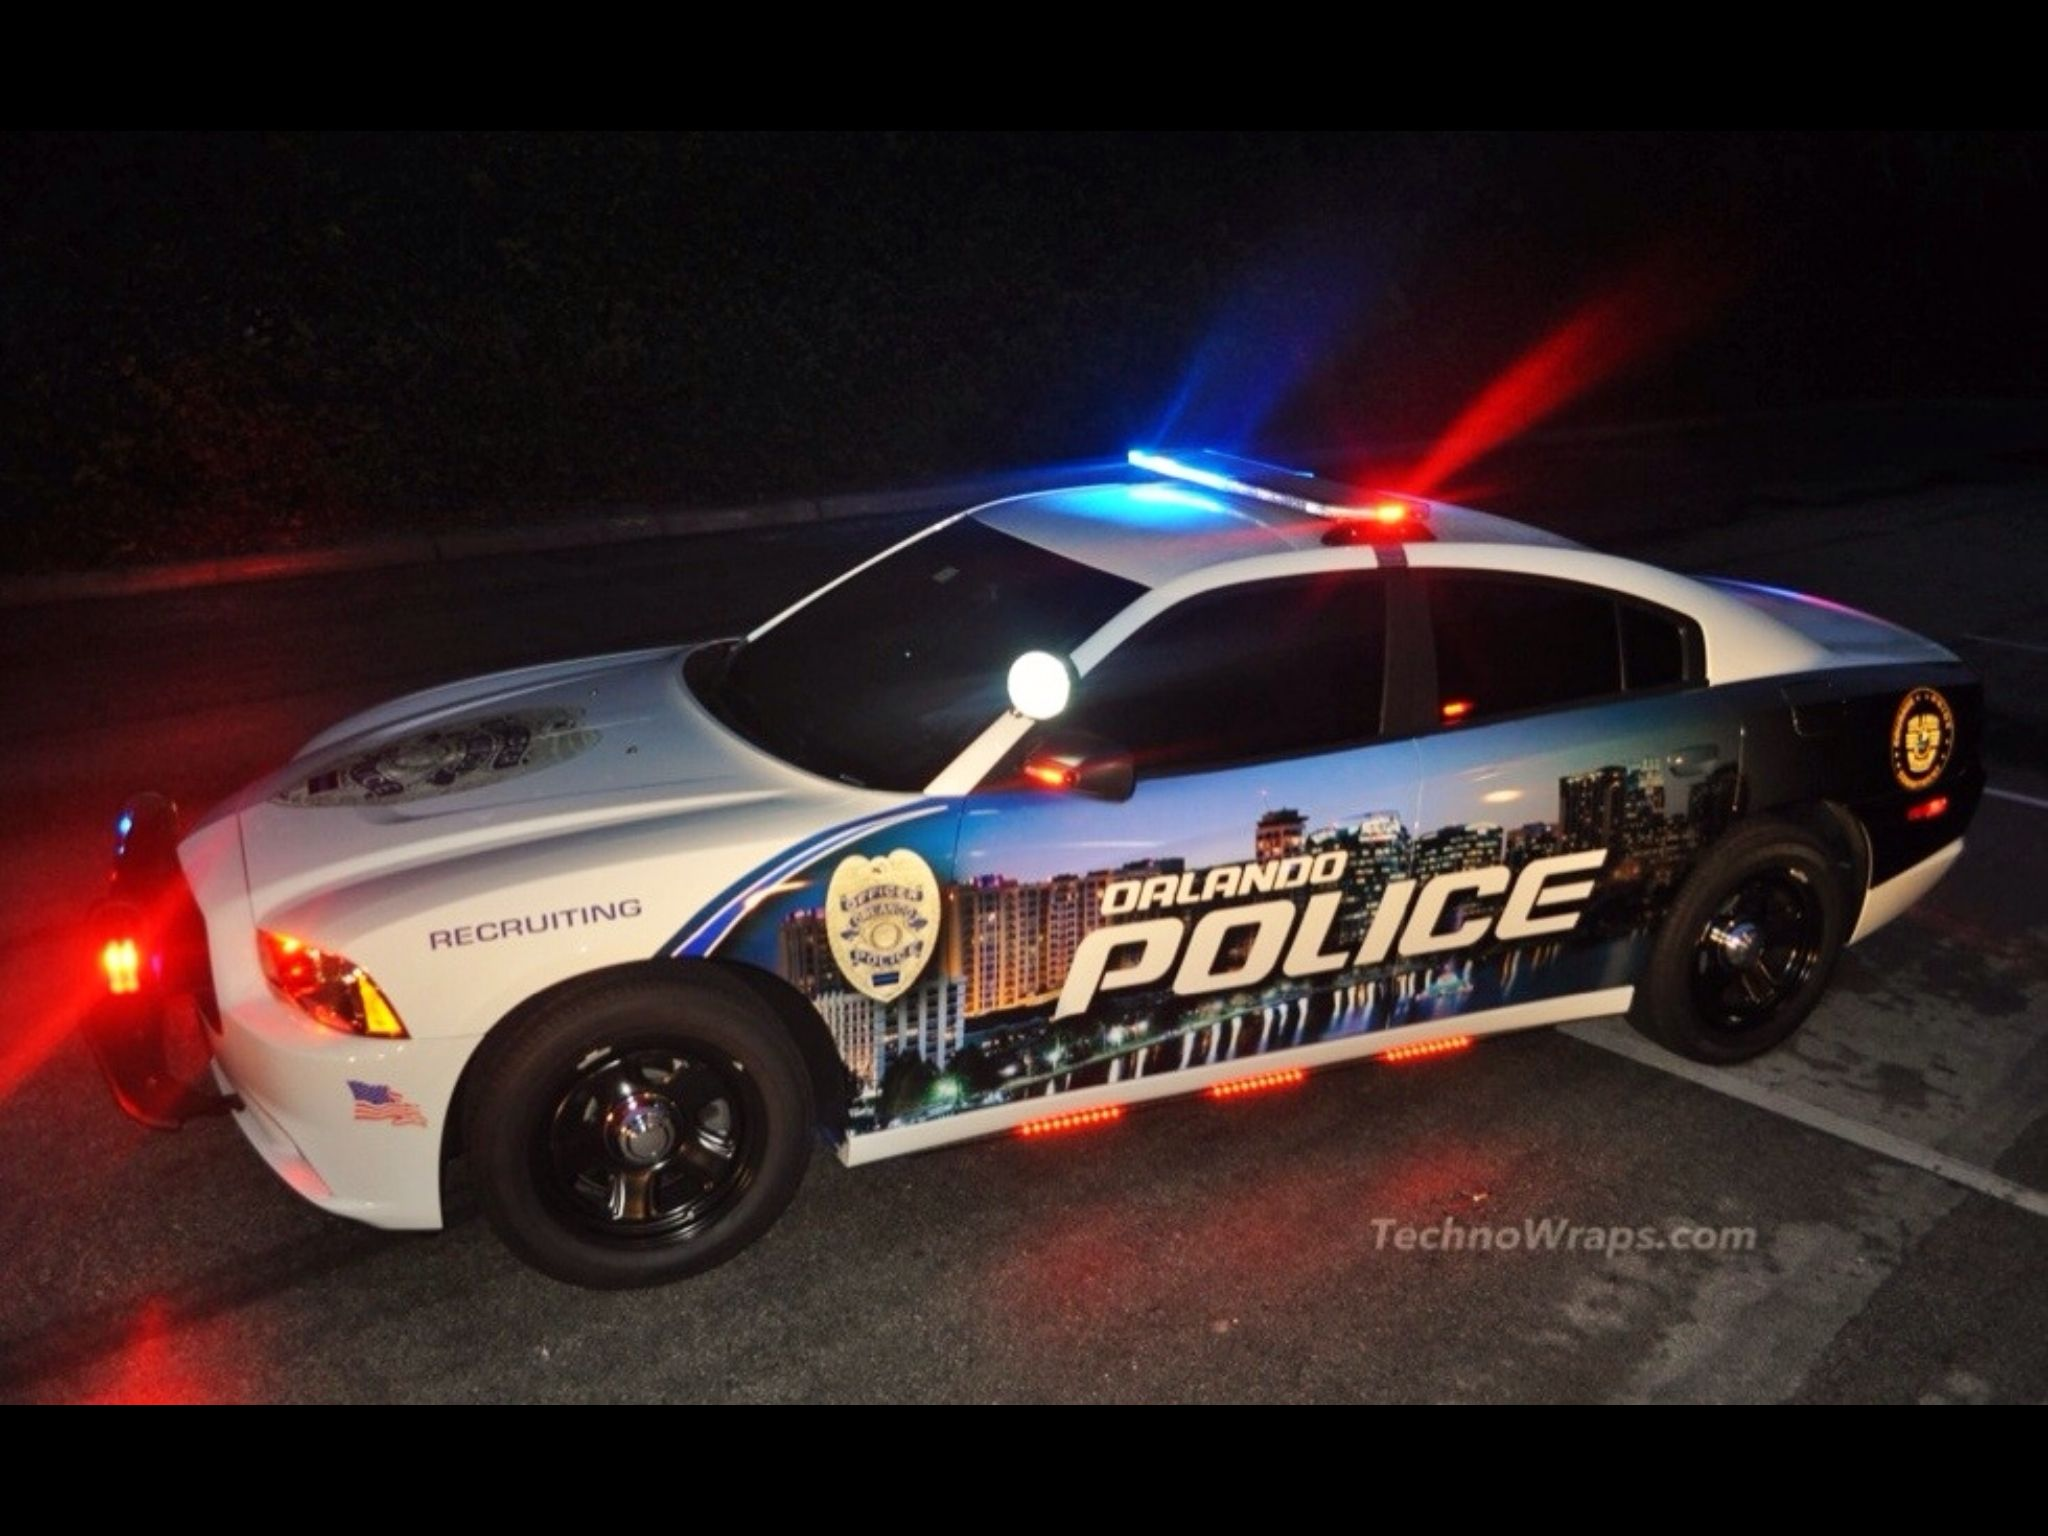 Pin On Police And Law Enforcement Graphics By Technosigns